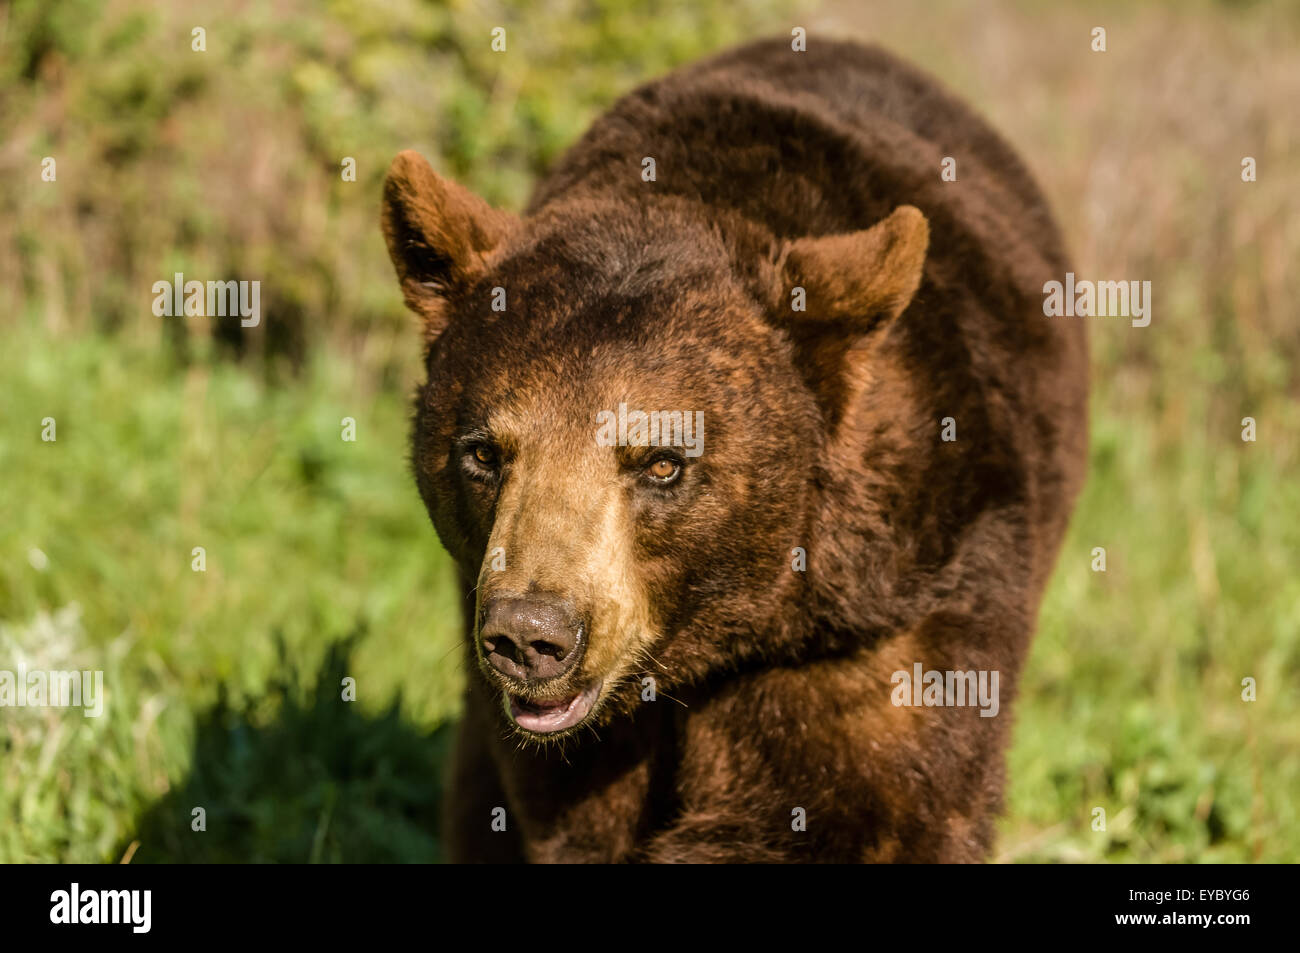 Grizzly bear walking - photo#39